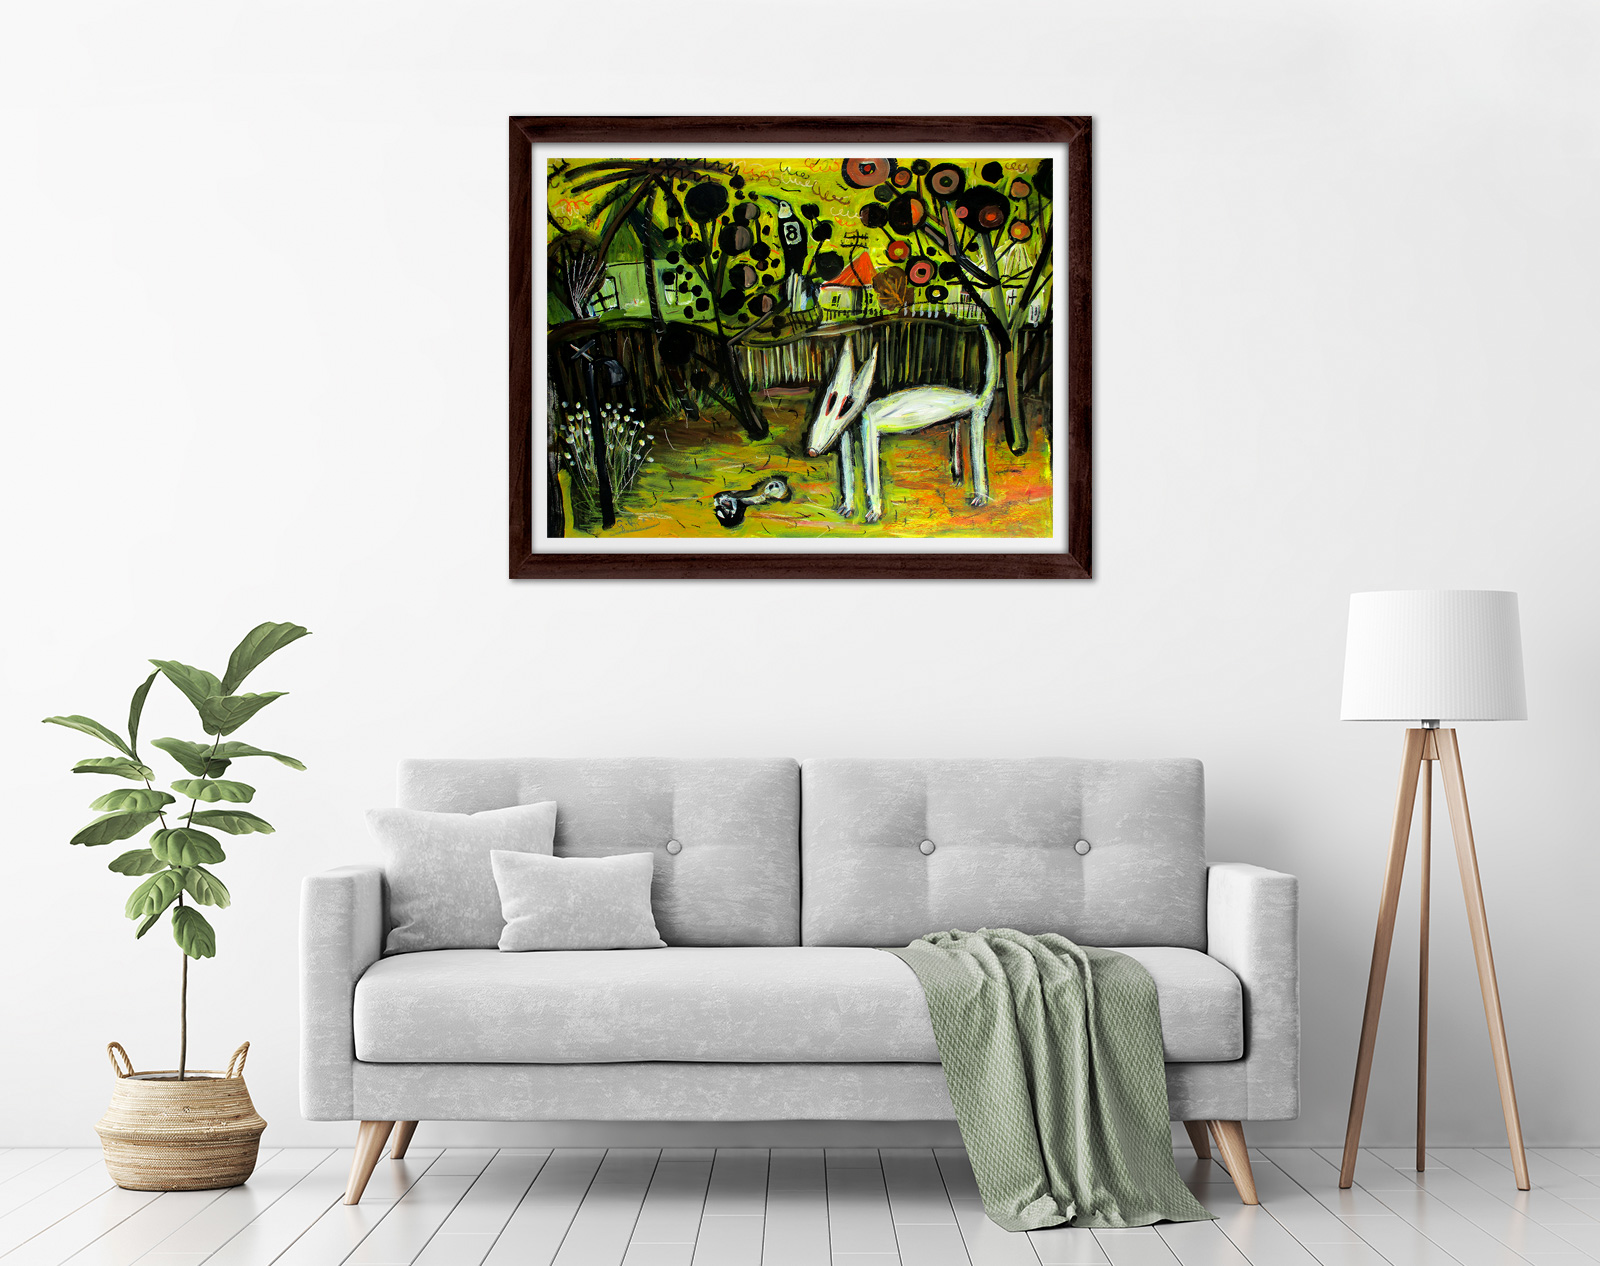 Glenn Brady - 'Bull Terrier in the Backyard' Framed in a room